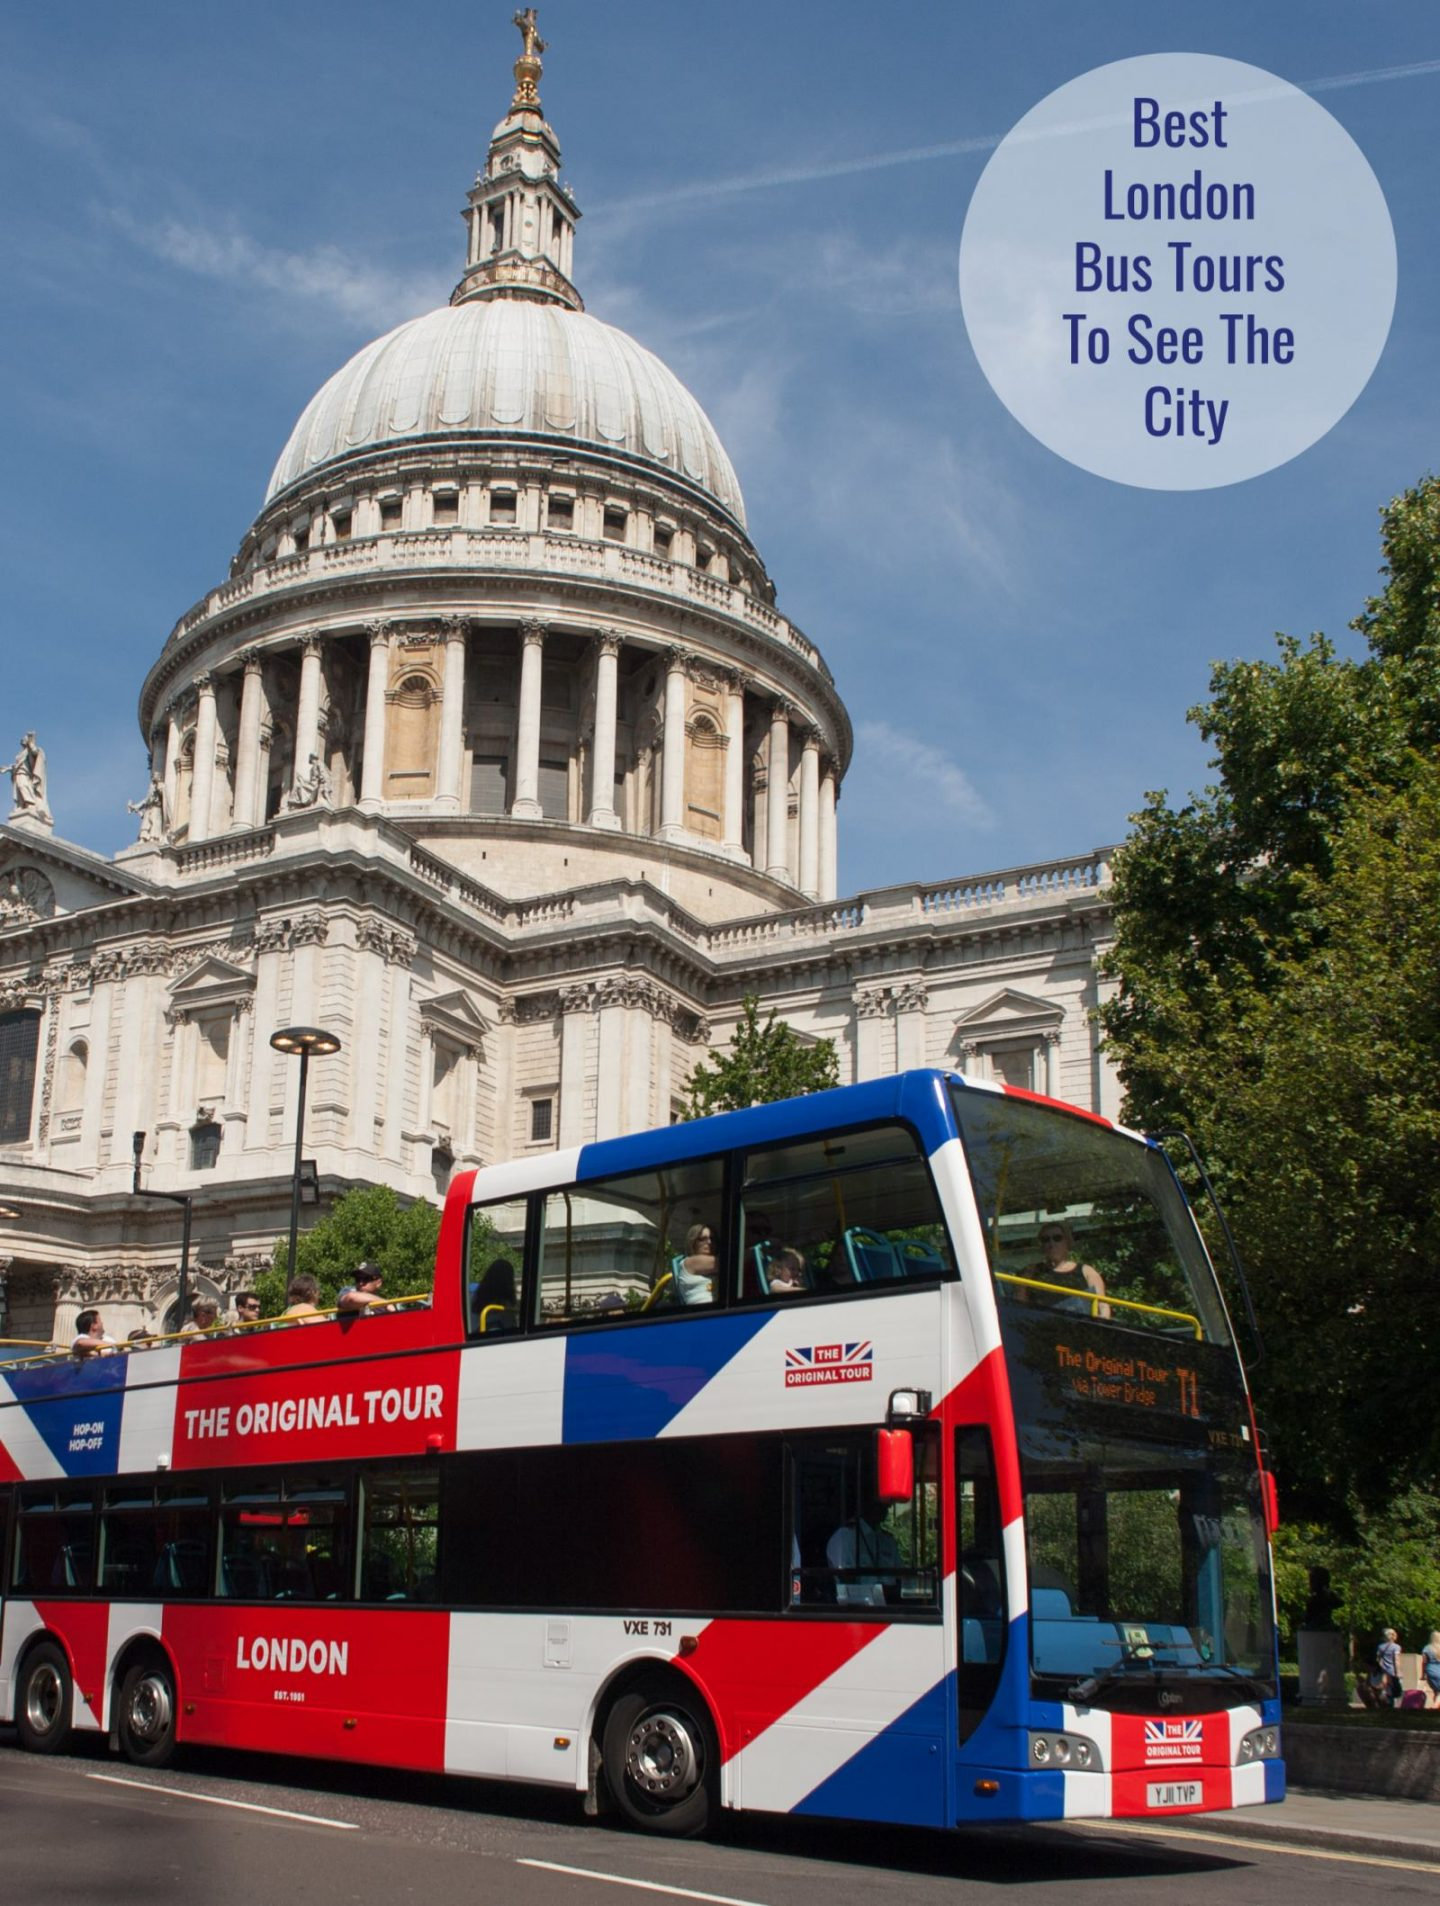 The Best Bus Tours To Take To See London and Get In All The Sights